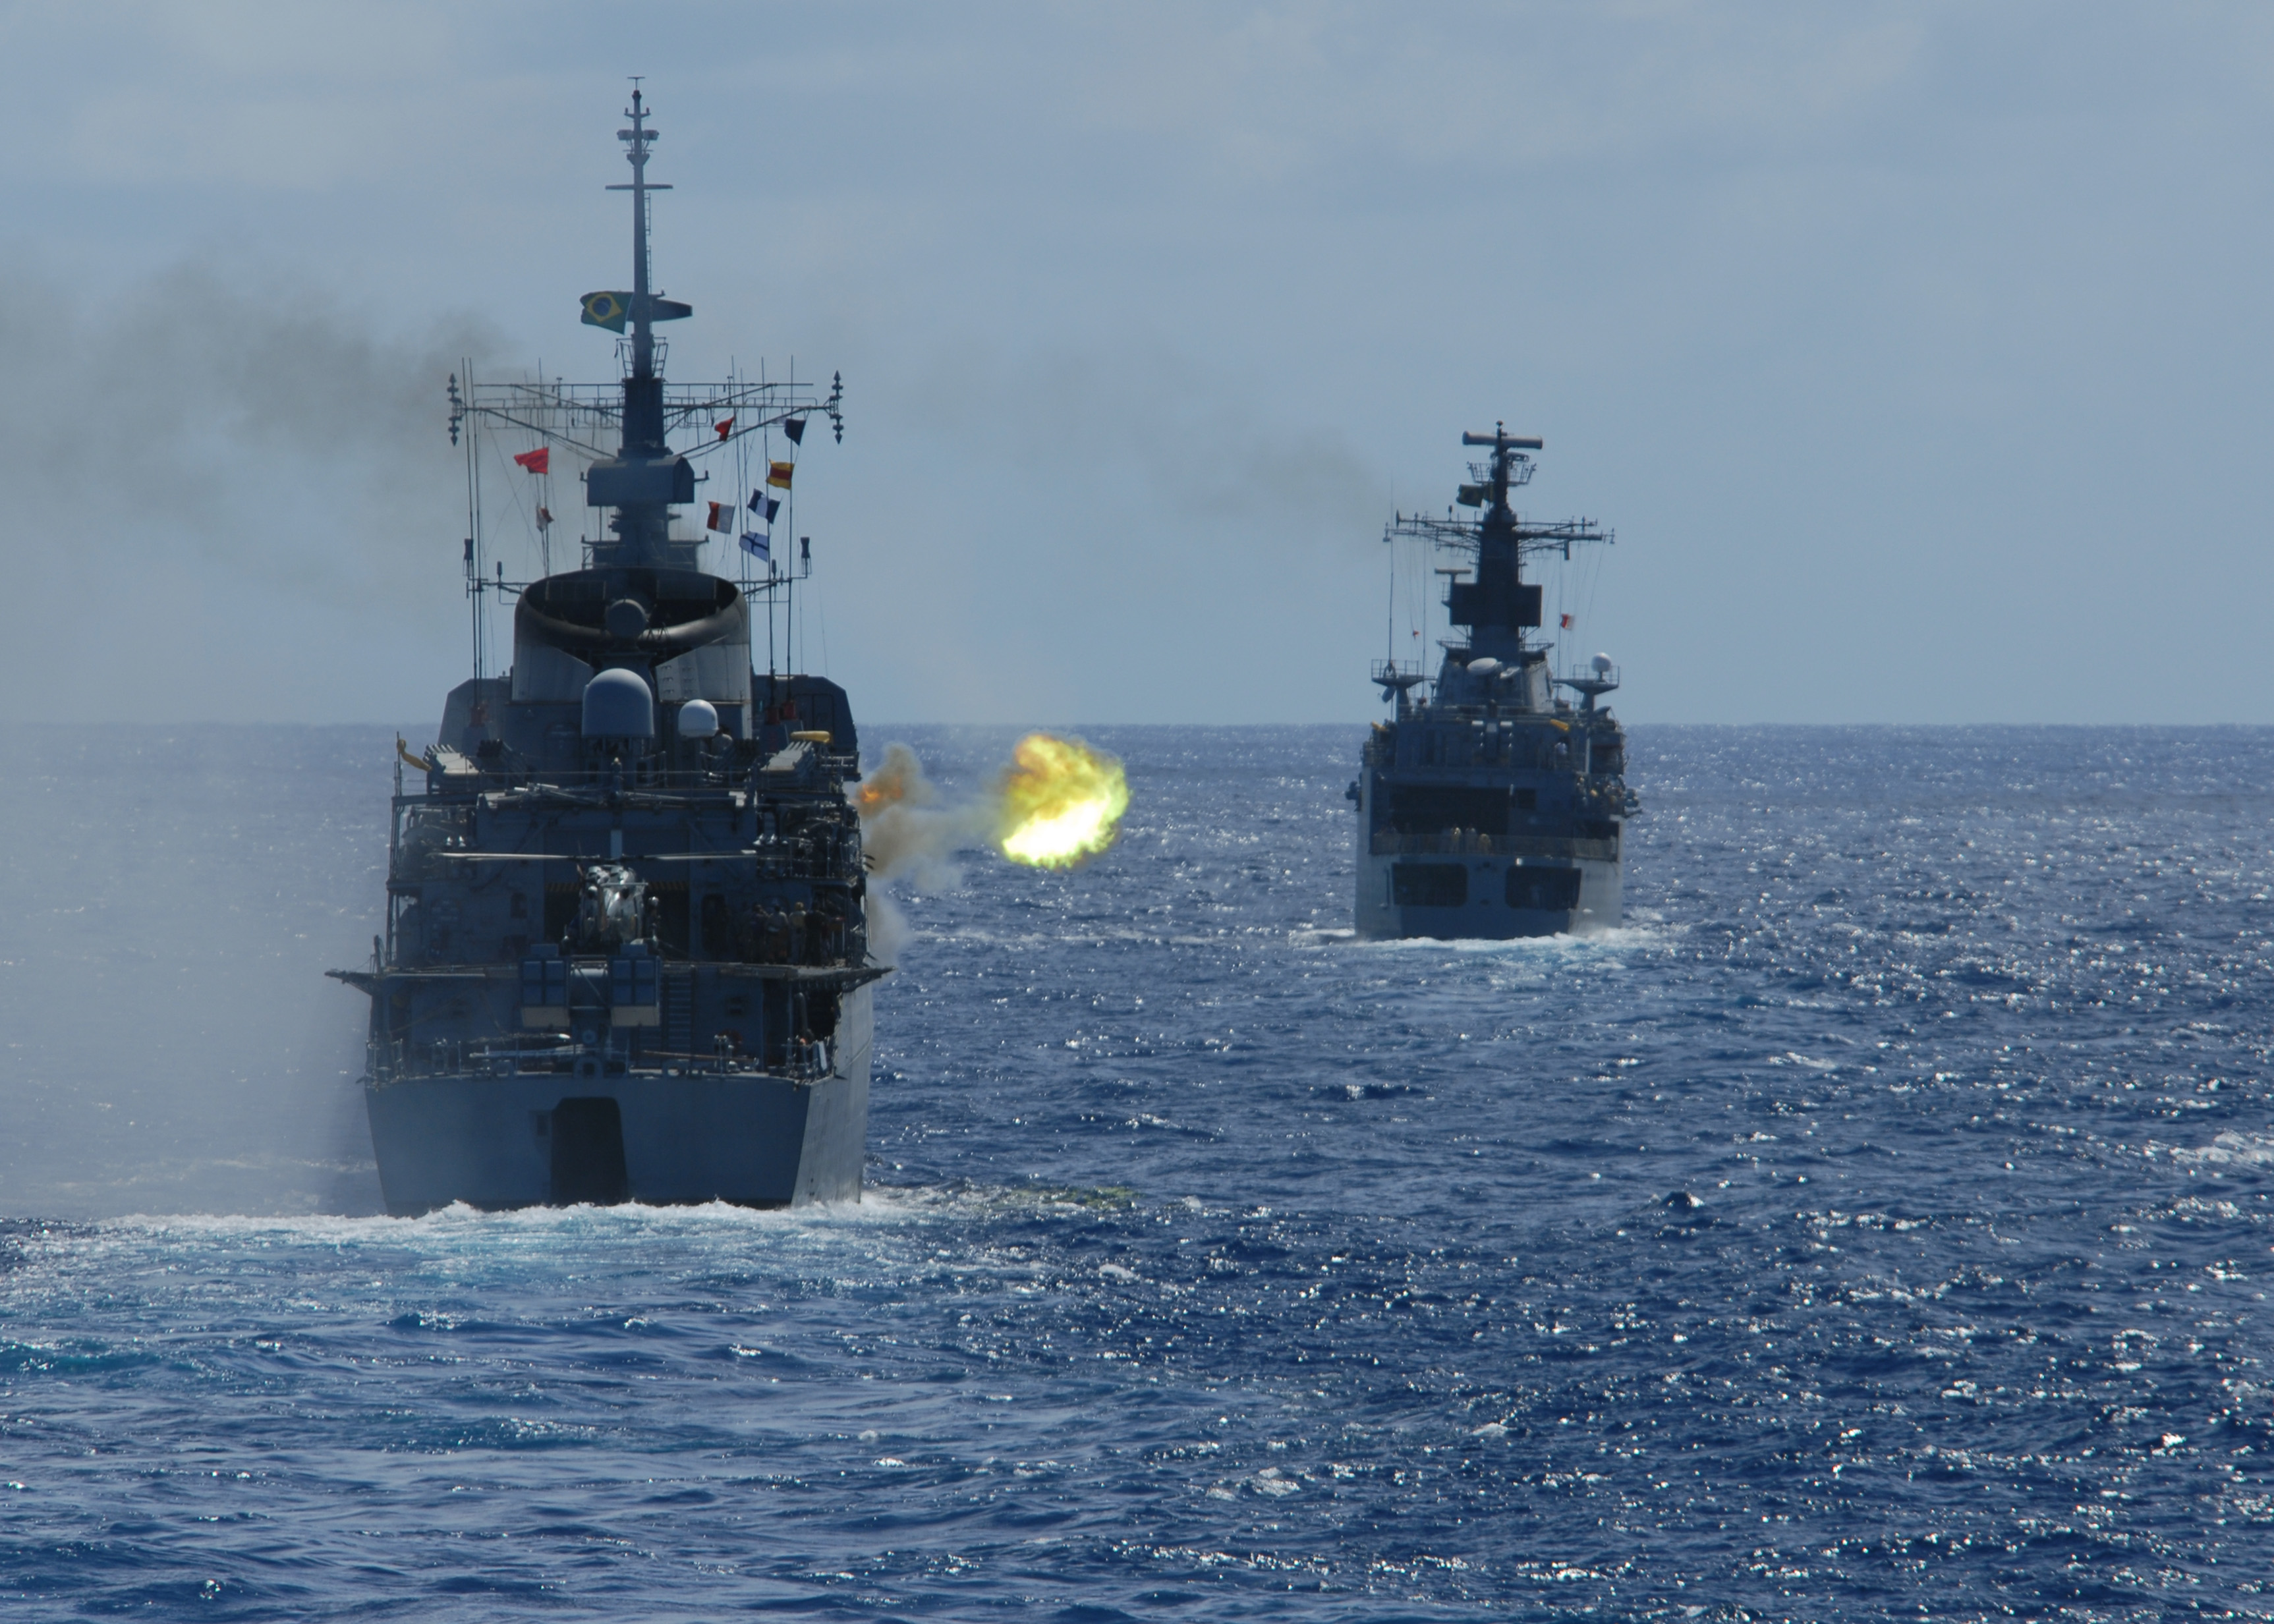 US Navy 110422-N-ZI300-115 The Brazilian navy frigate Bosisio (F 48) fires at an unmanned aerial vehicle during a drone exercise (DRONEX) with ship